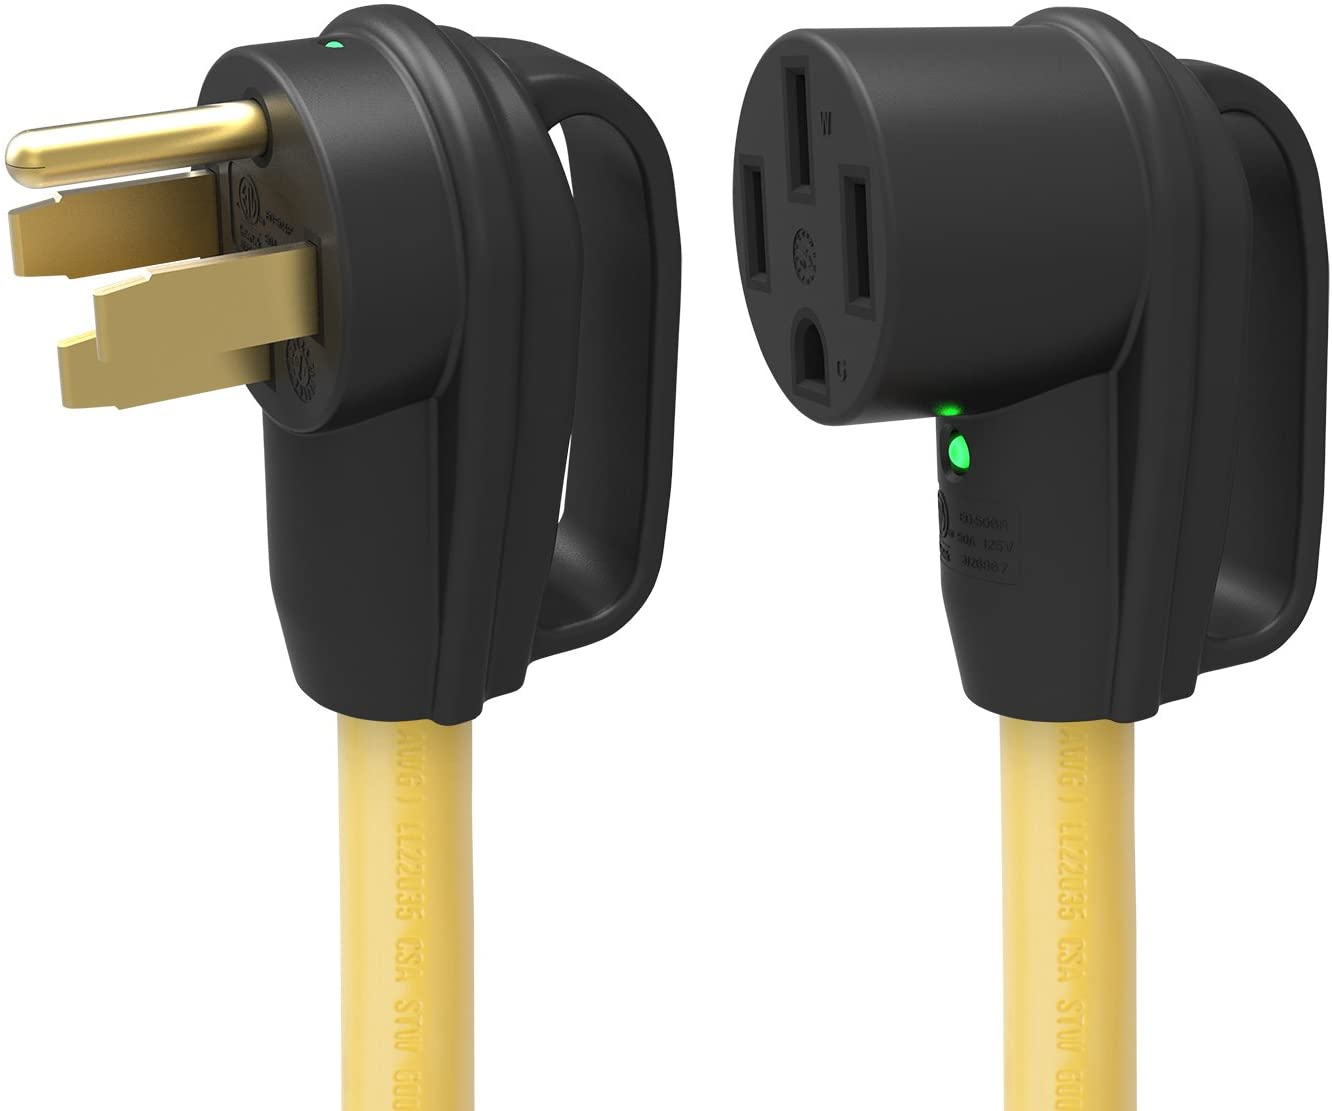 Very popular Weekender 2021 by ParkPower Cord Extension 50ARVE10